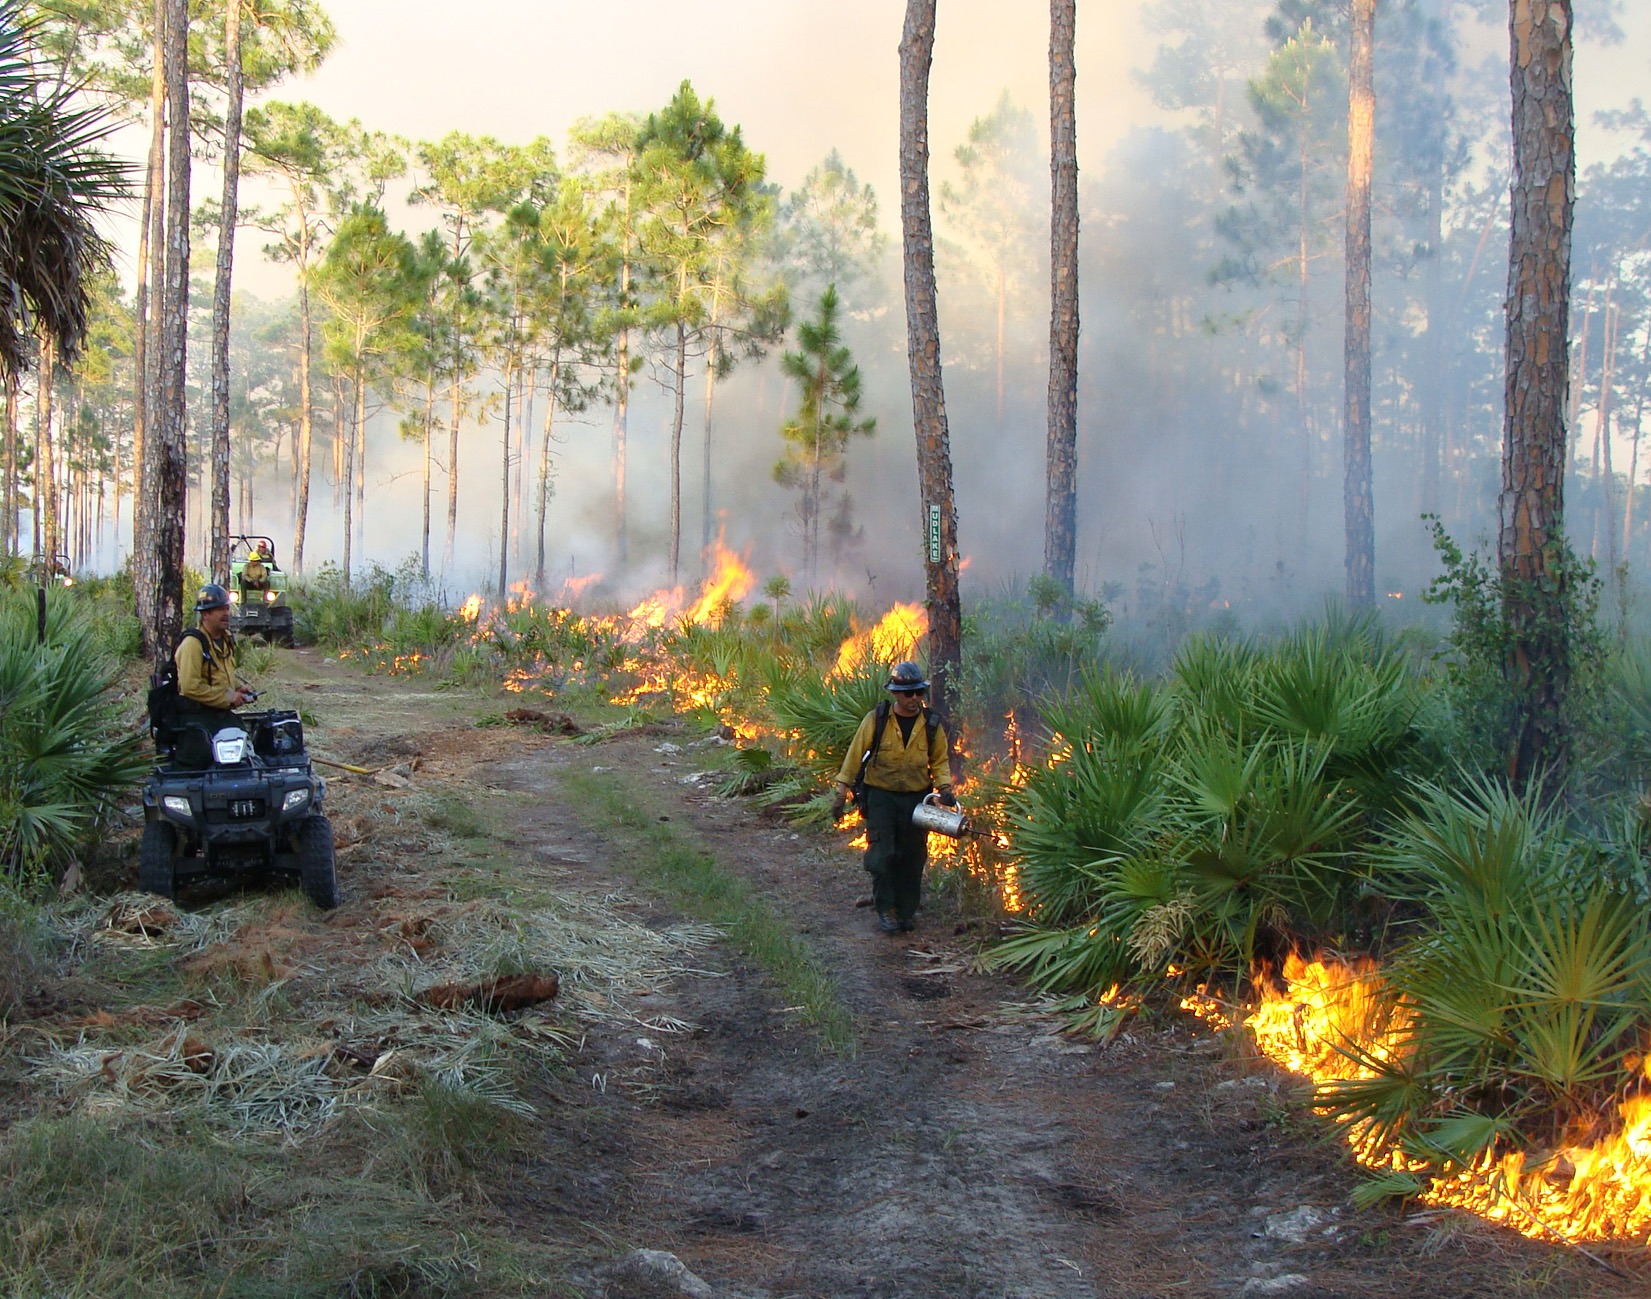 Firefighters maintaining a fireline